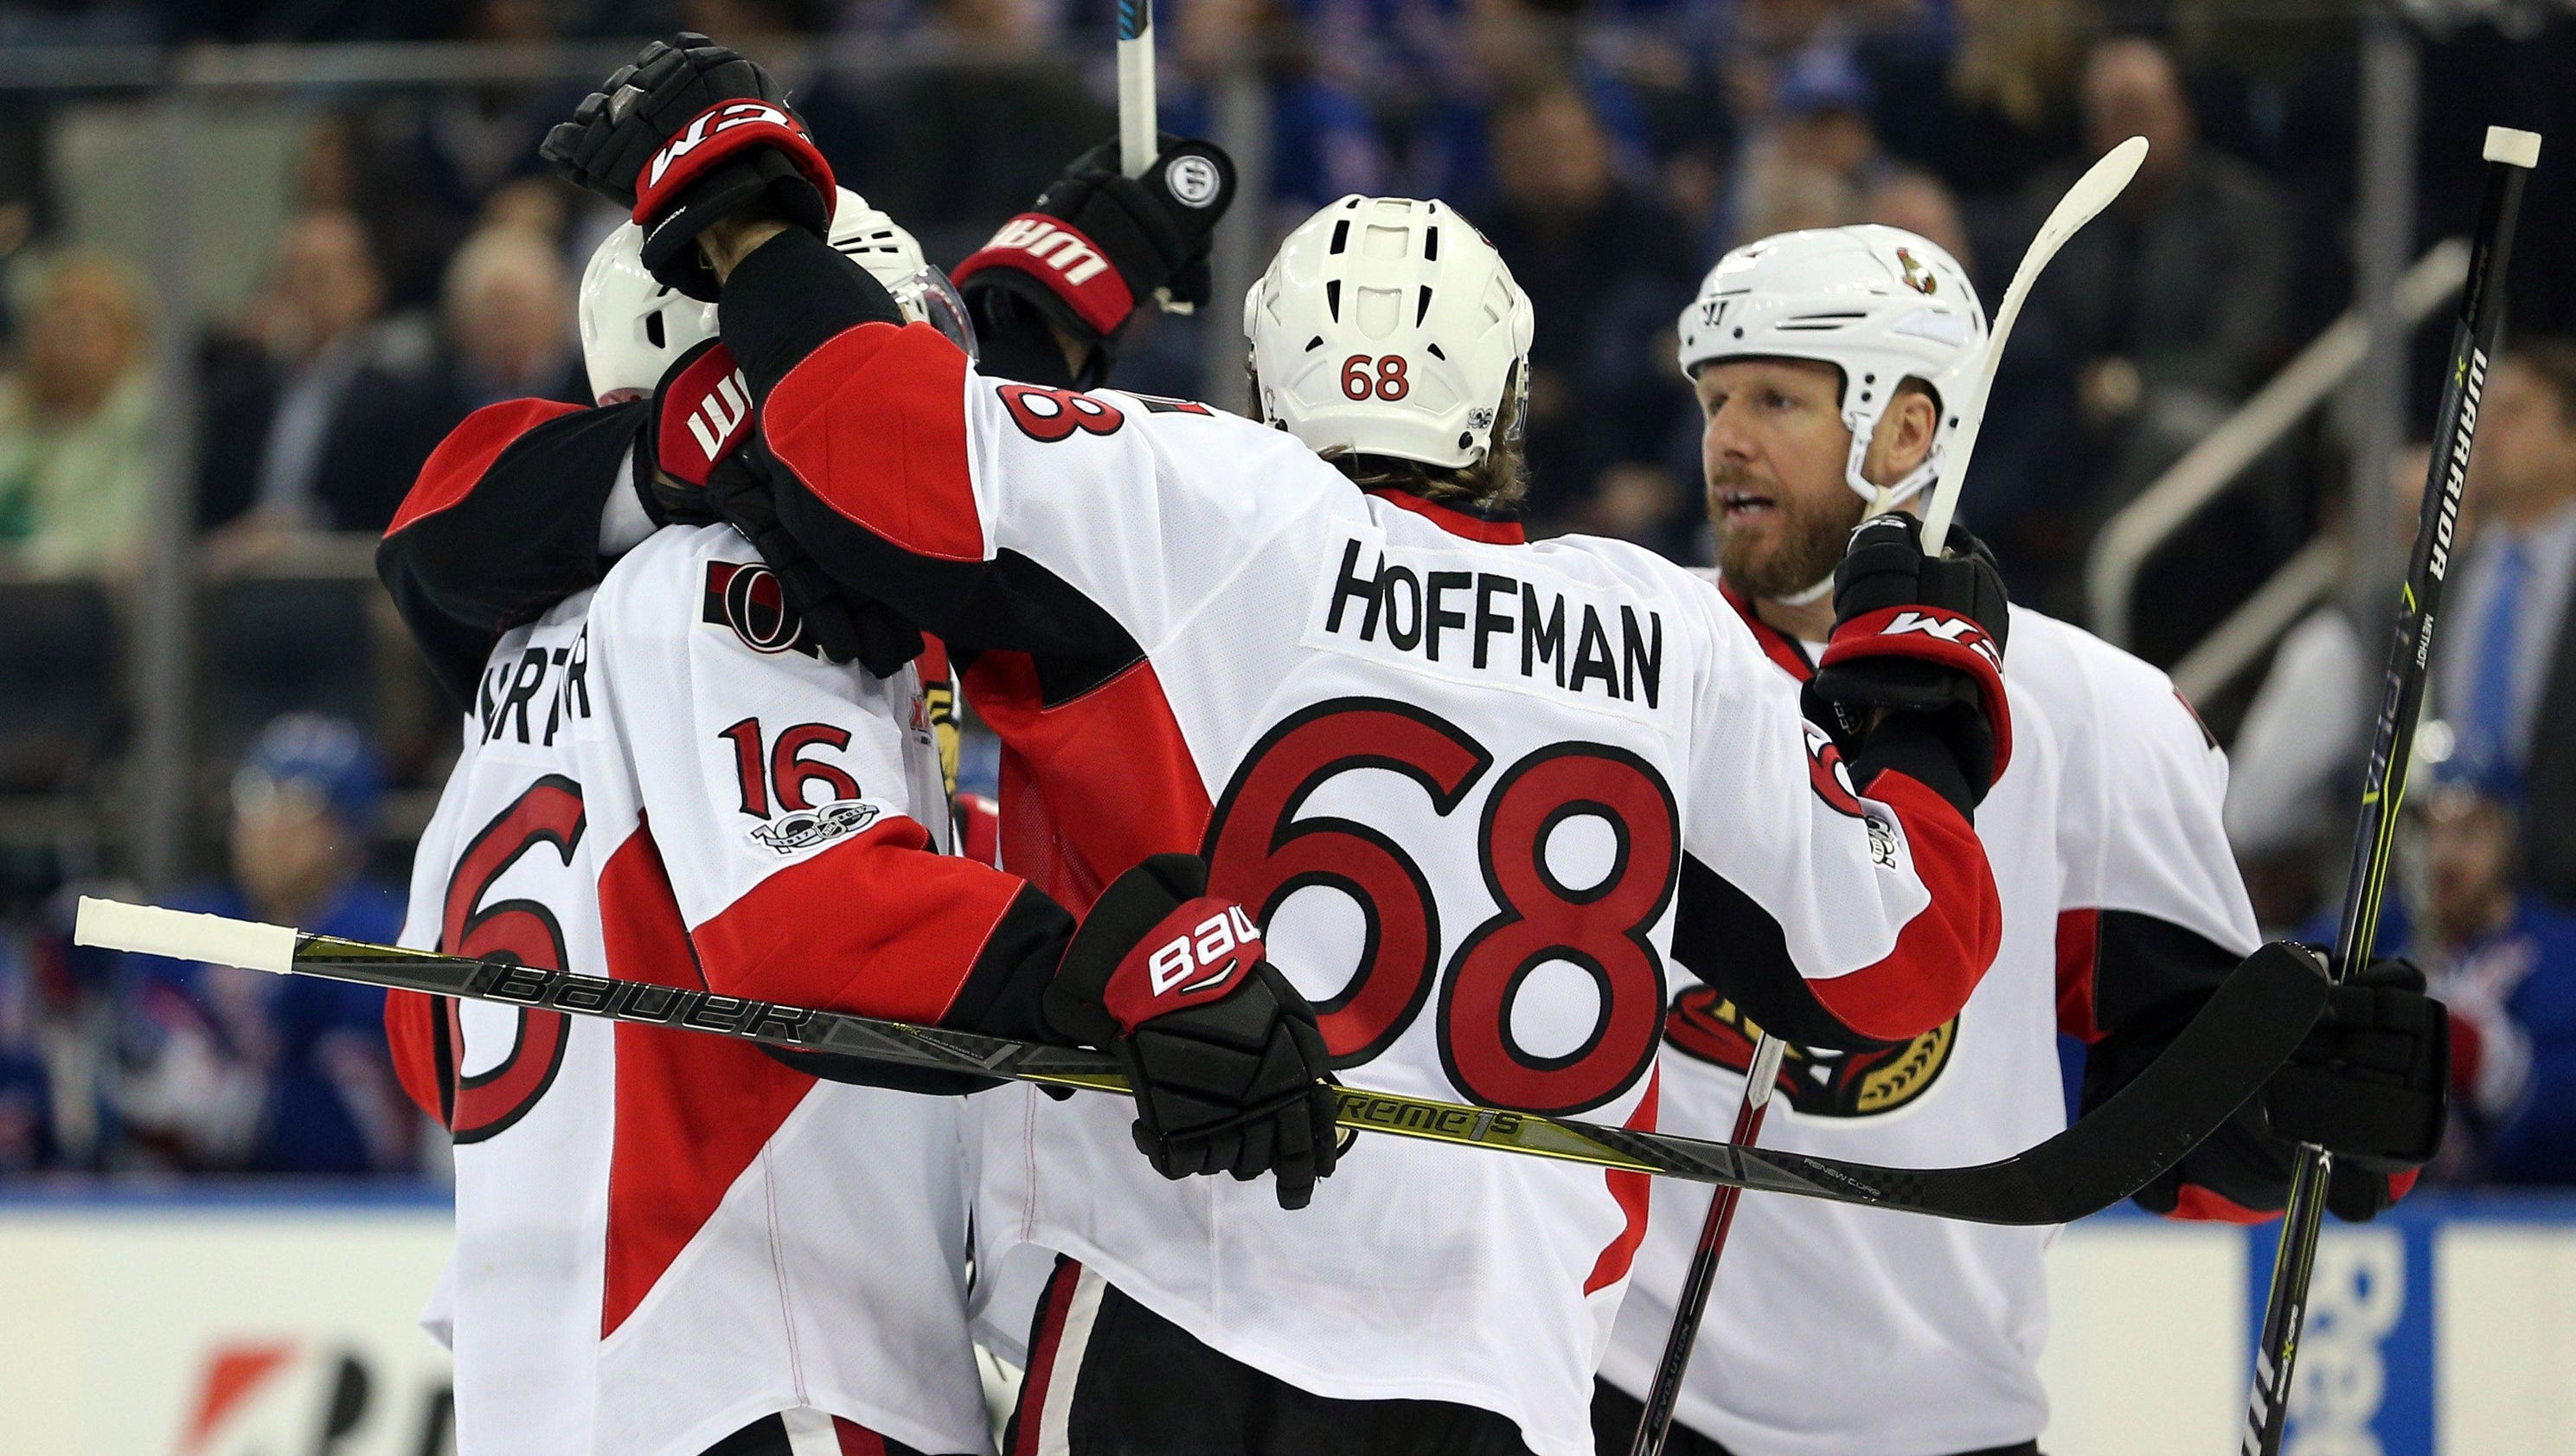 636299598632587693-usp-nhl--stanley-cup-playoffs-ottawa-senators-at-n